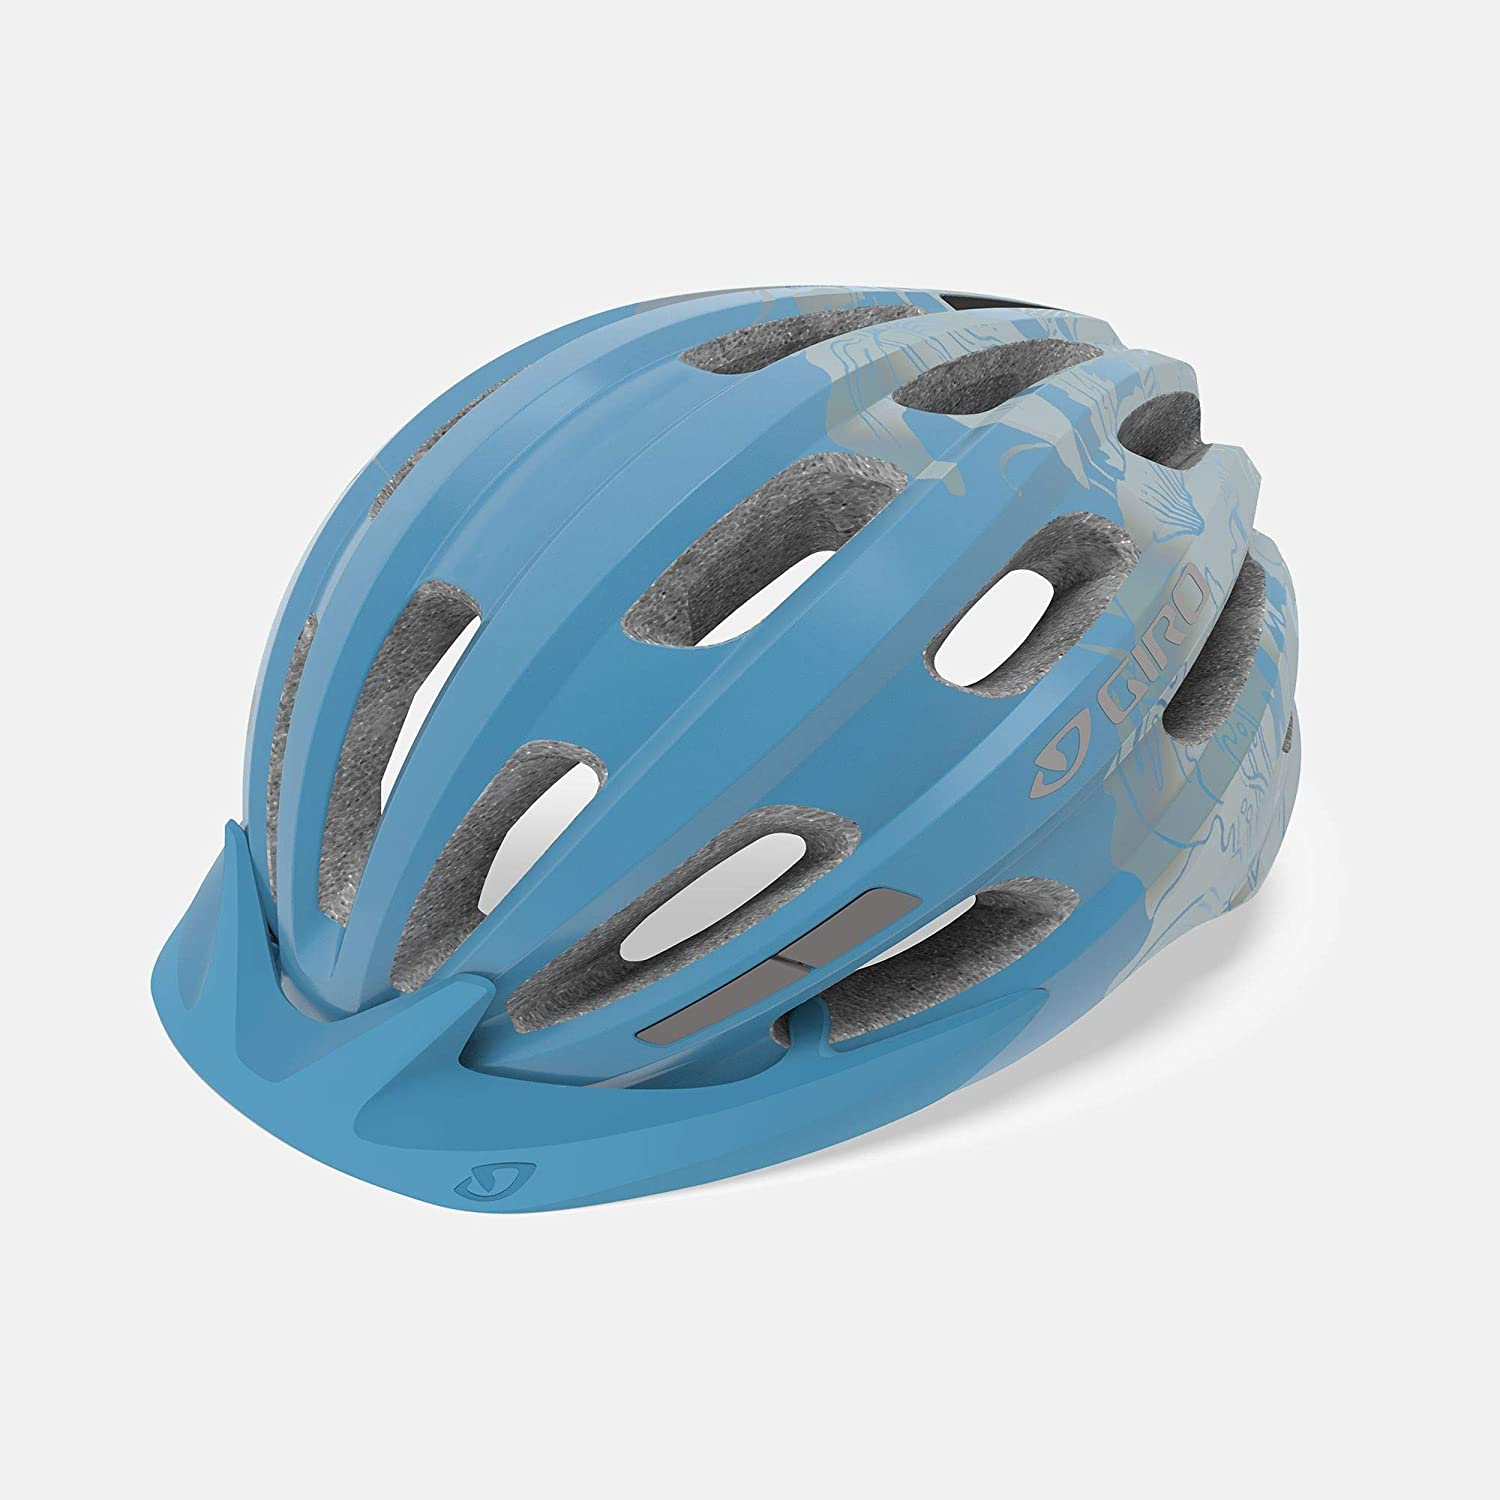 Giro Vasona MIPS Womens Recreational Cycling Helmet - Universal Women's (50-57 cm), Ice Blue Floral (2020)